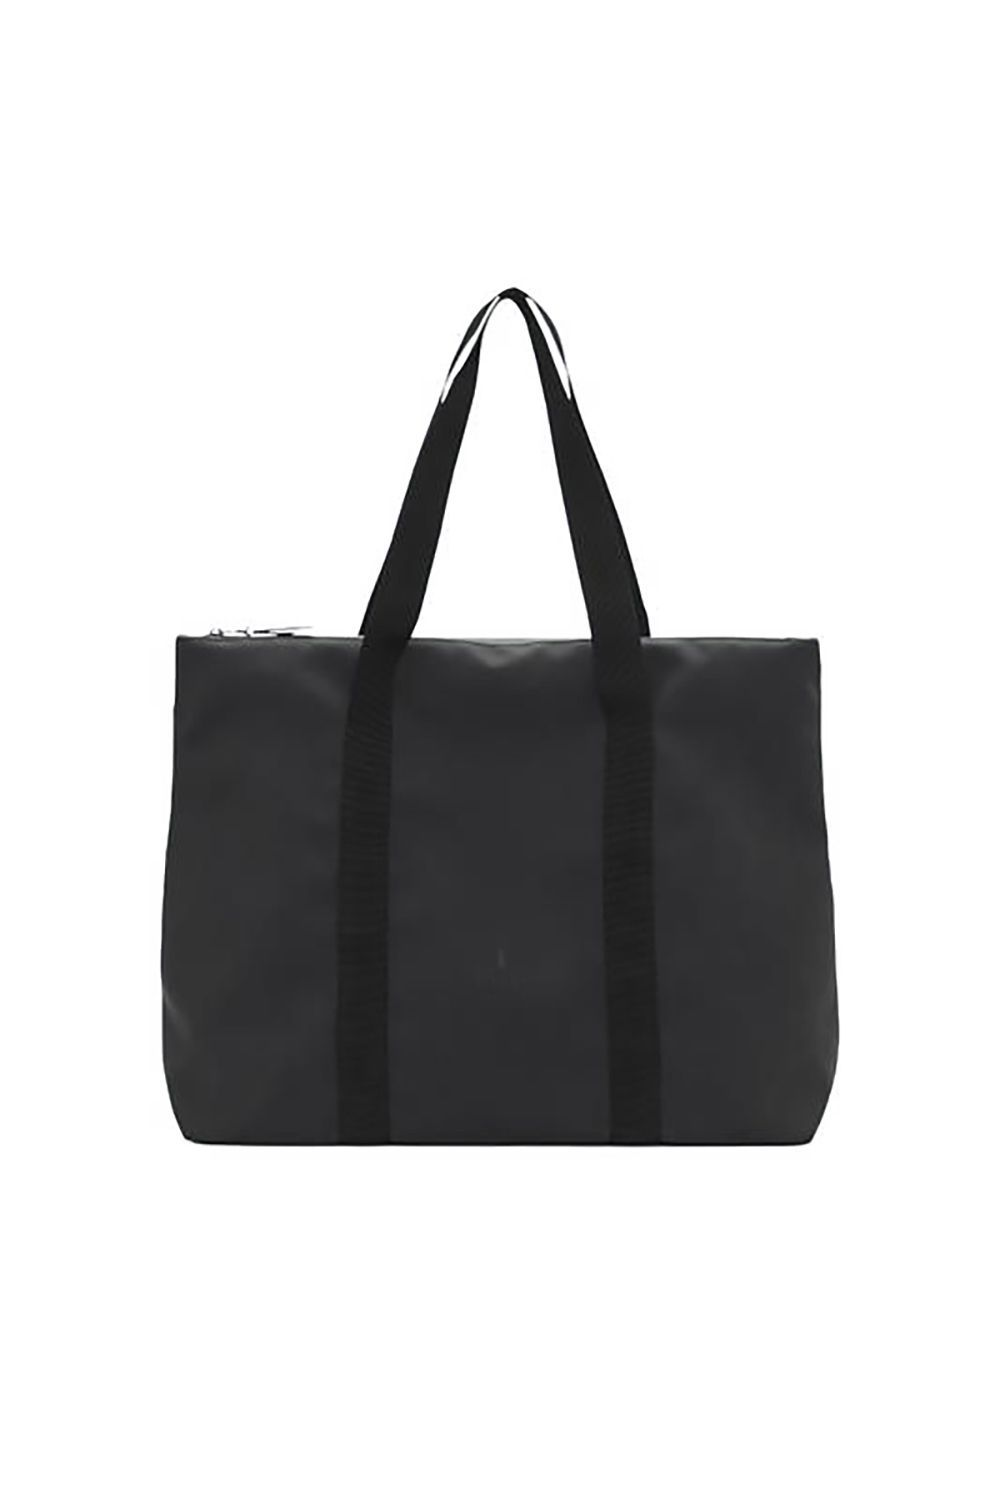 a4bcb1ecdb0d 13 Best Laptop Bags for Women 2019 - Stylish Computer Totes and Handbags